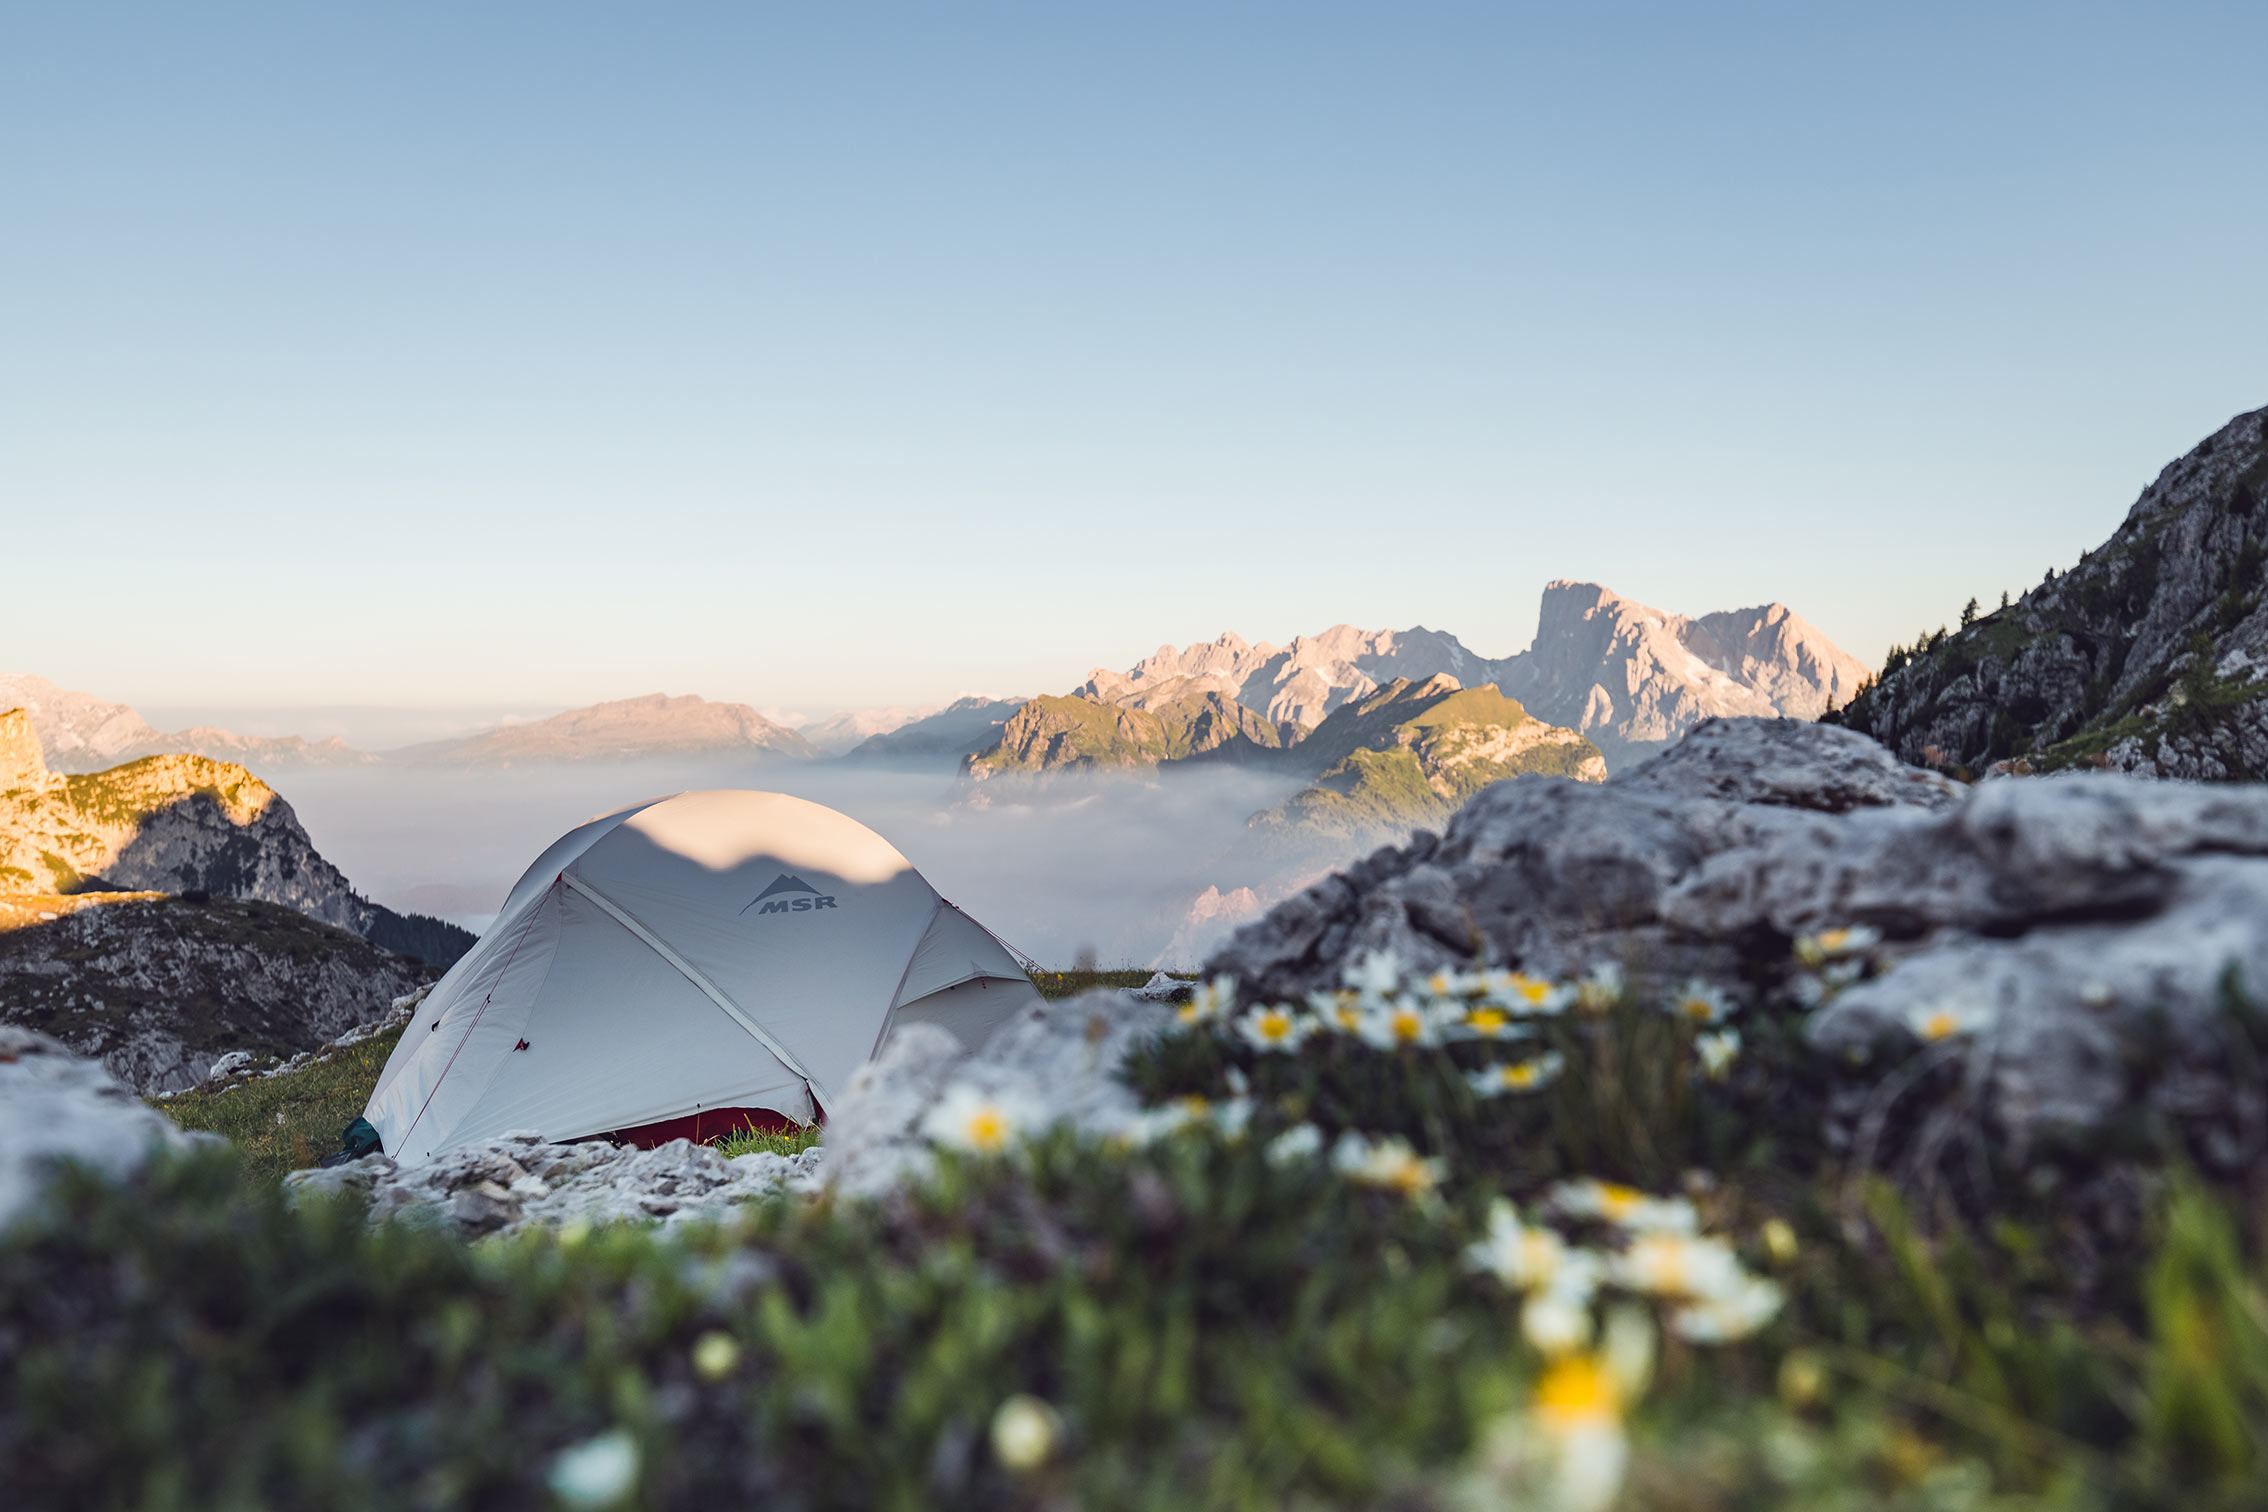 Tent rigged up in the mountains in the setting sun ©Miriam Mayer